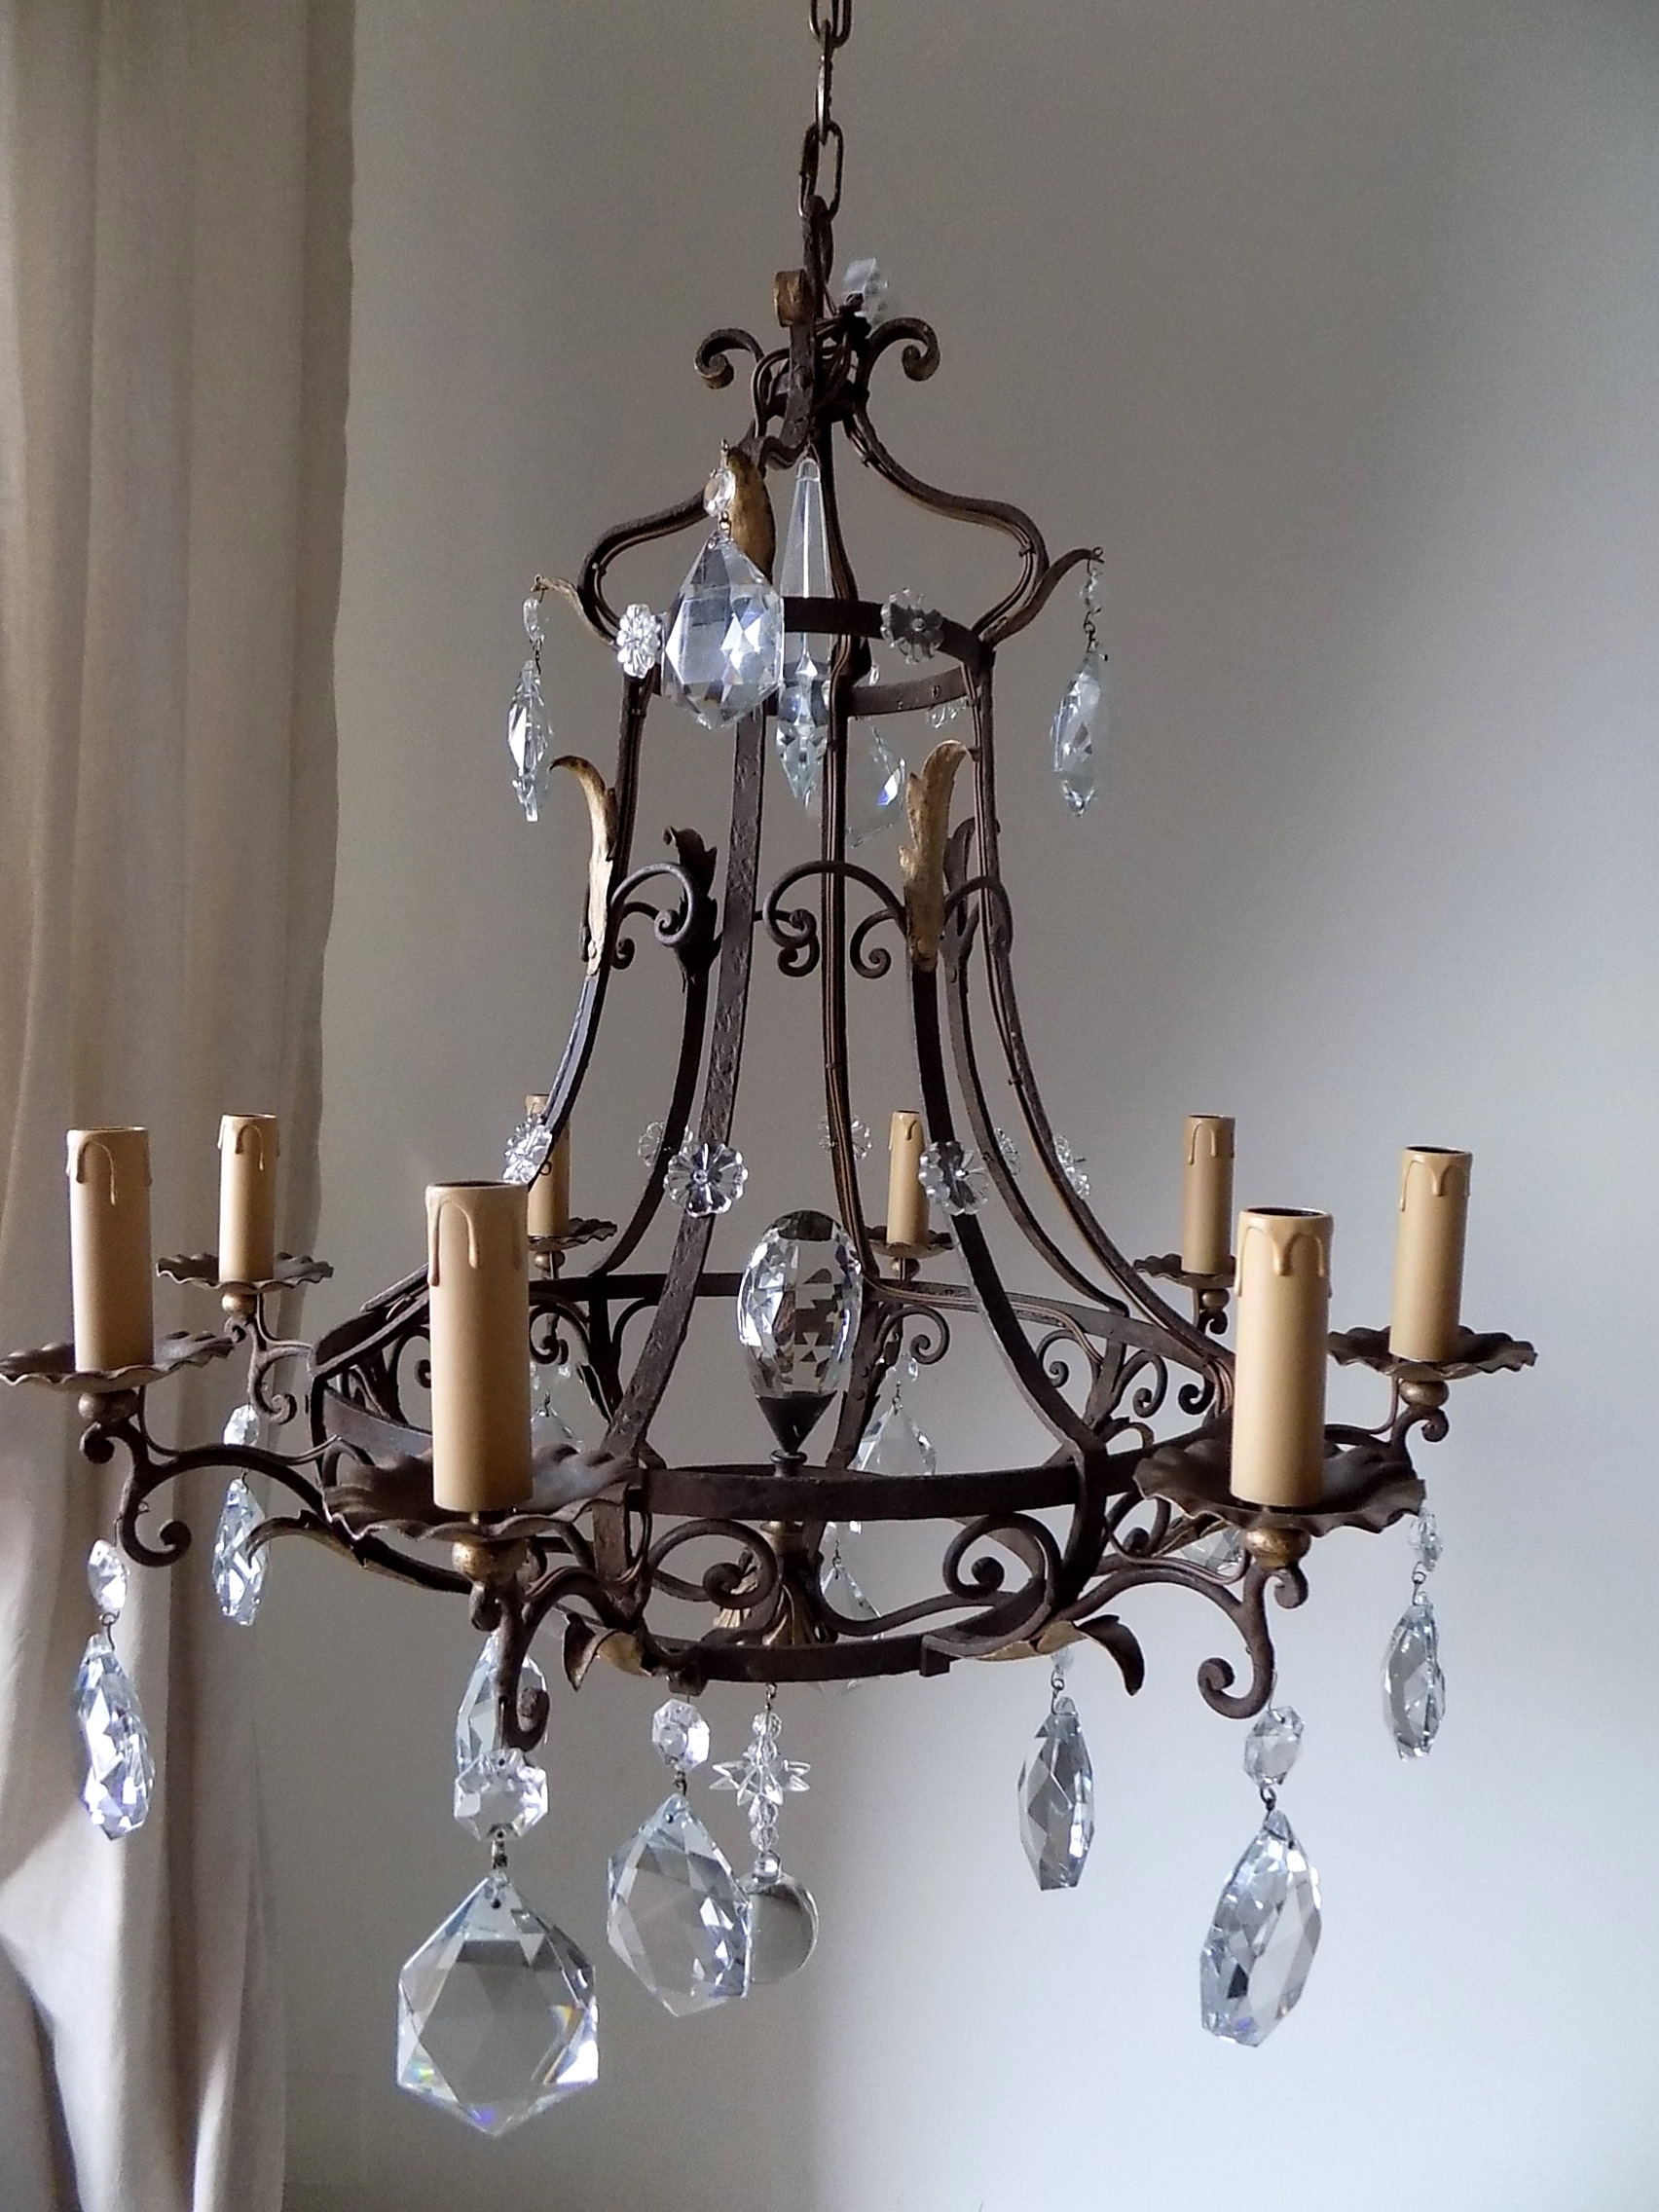 Best And Newest Antique French Iron Chandeliers – Dayri Within Antique French Chandeliers (View 16 of 20)